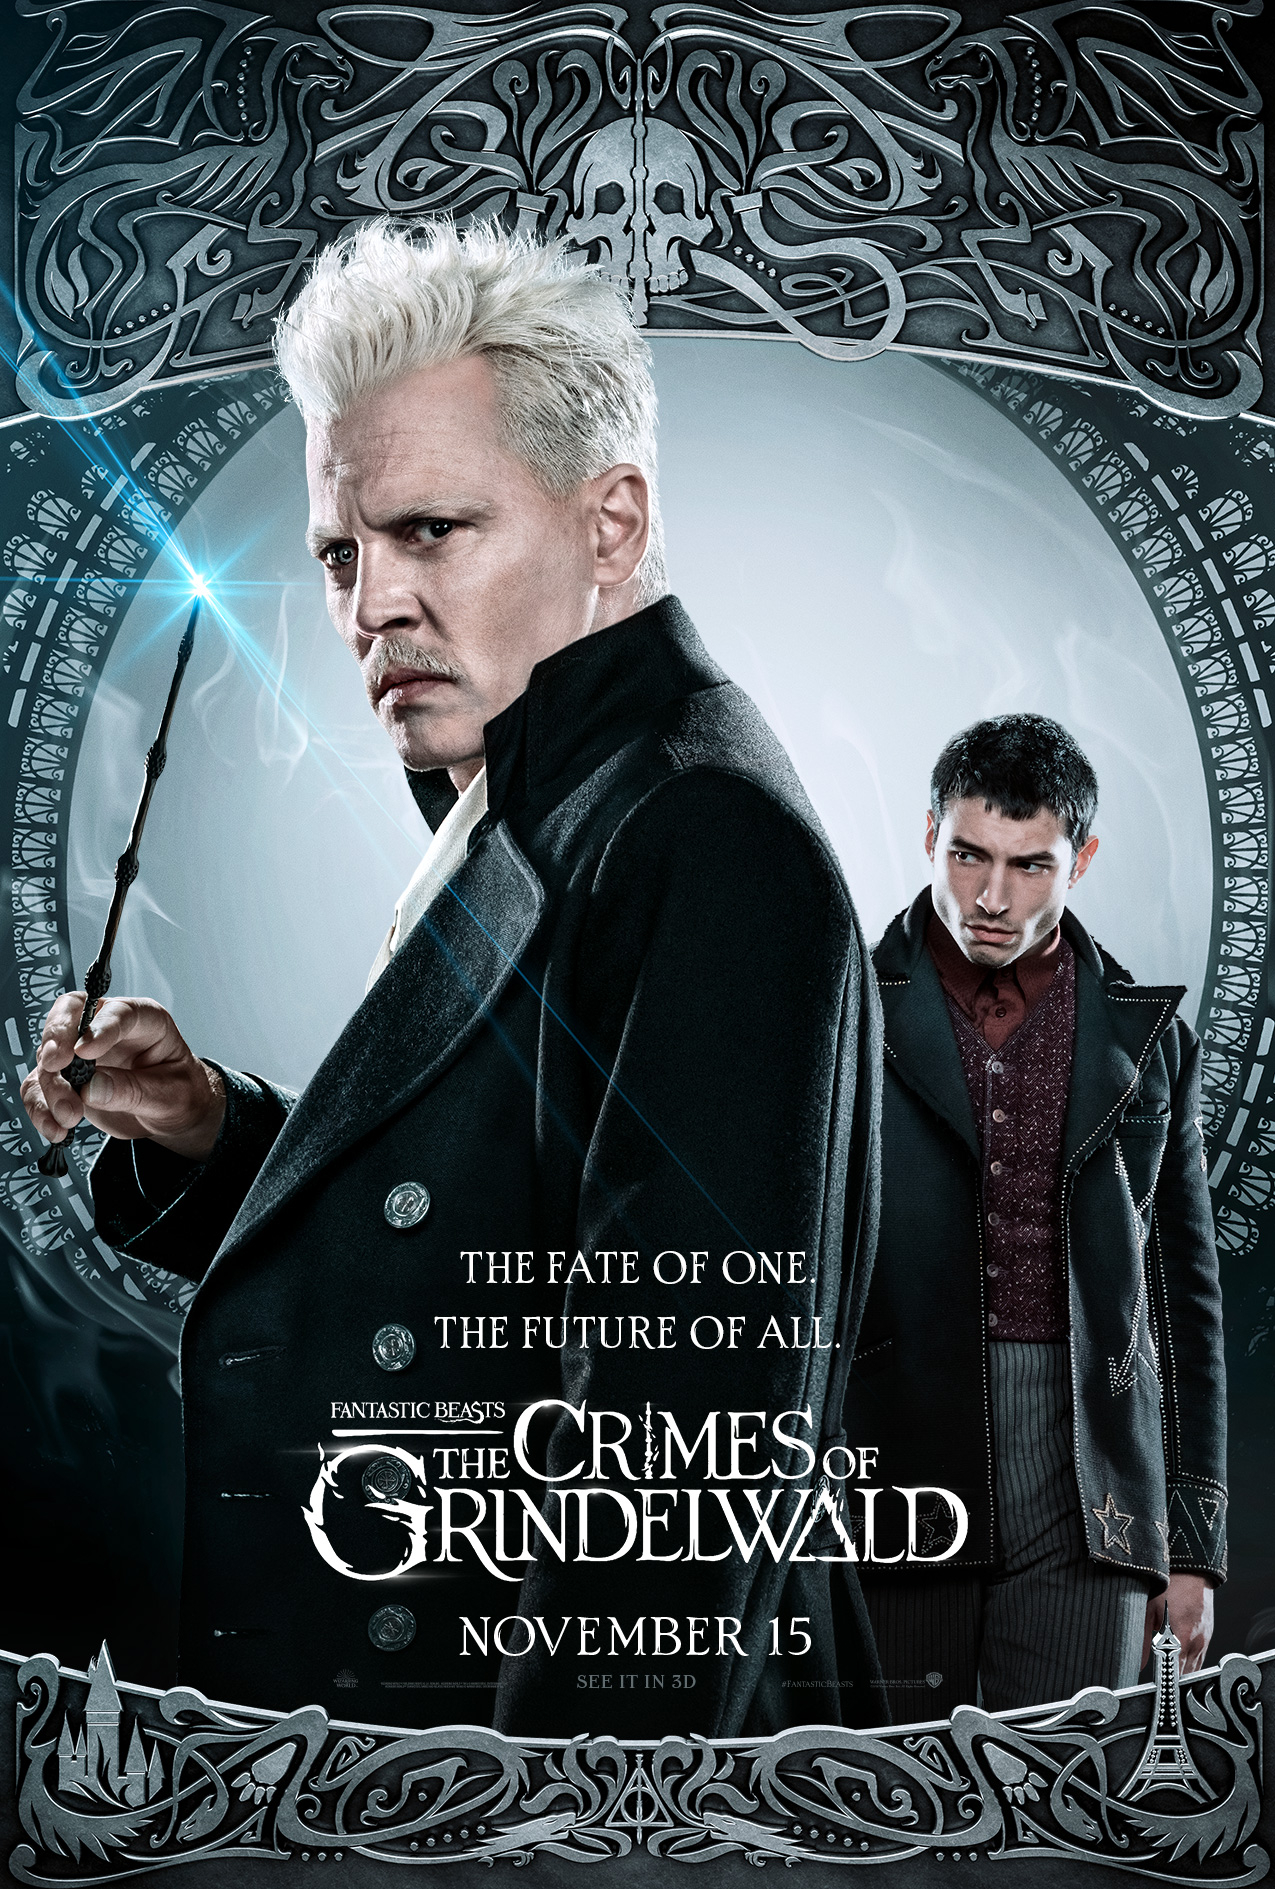 Fantastic Beasts The Crimes Of Grindelwald Now Showing